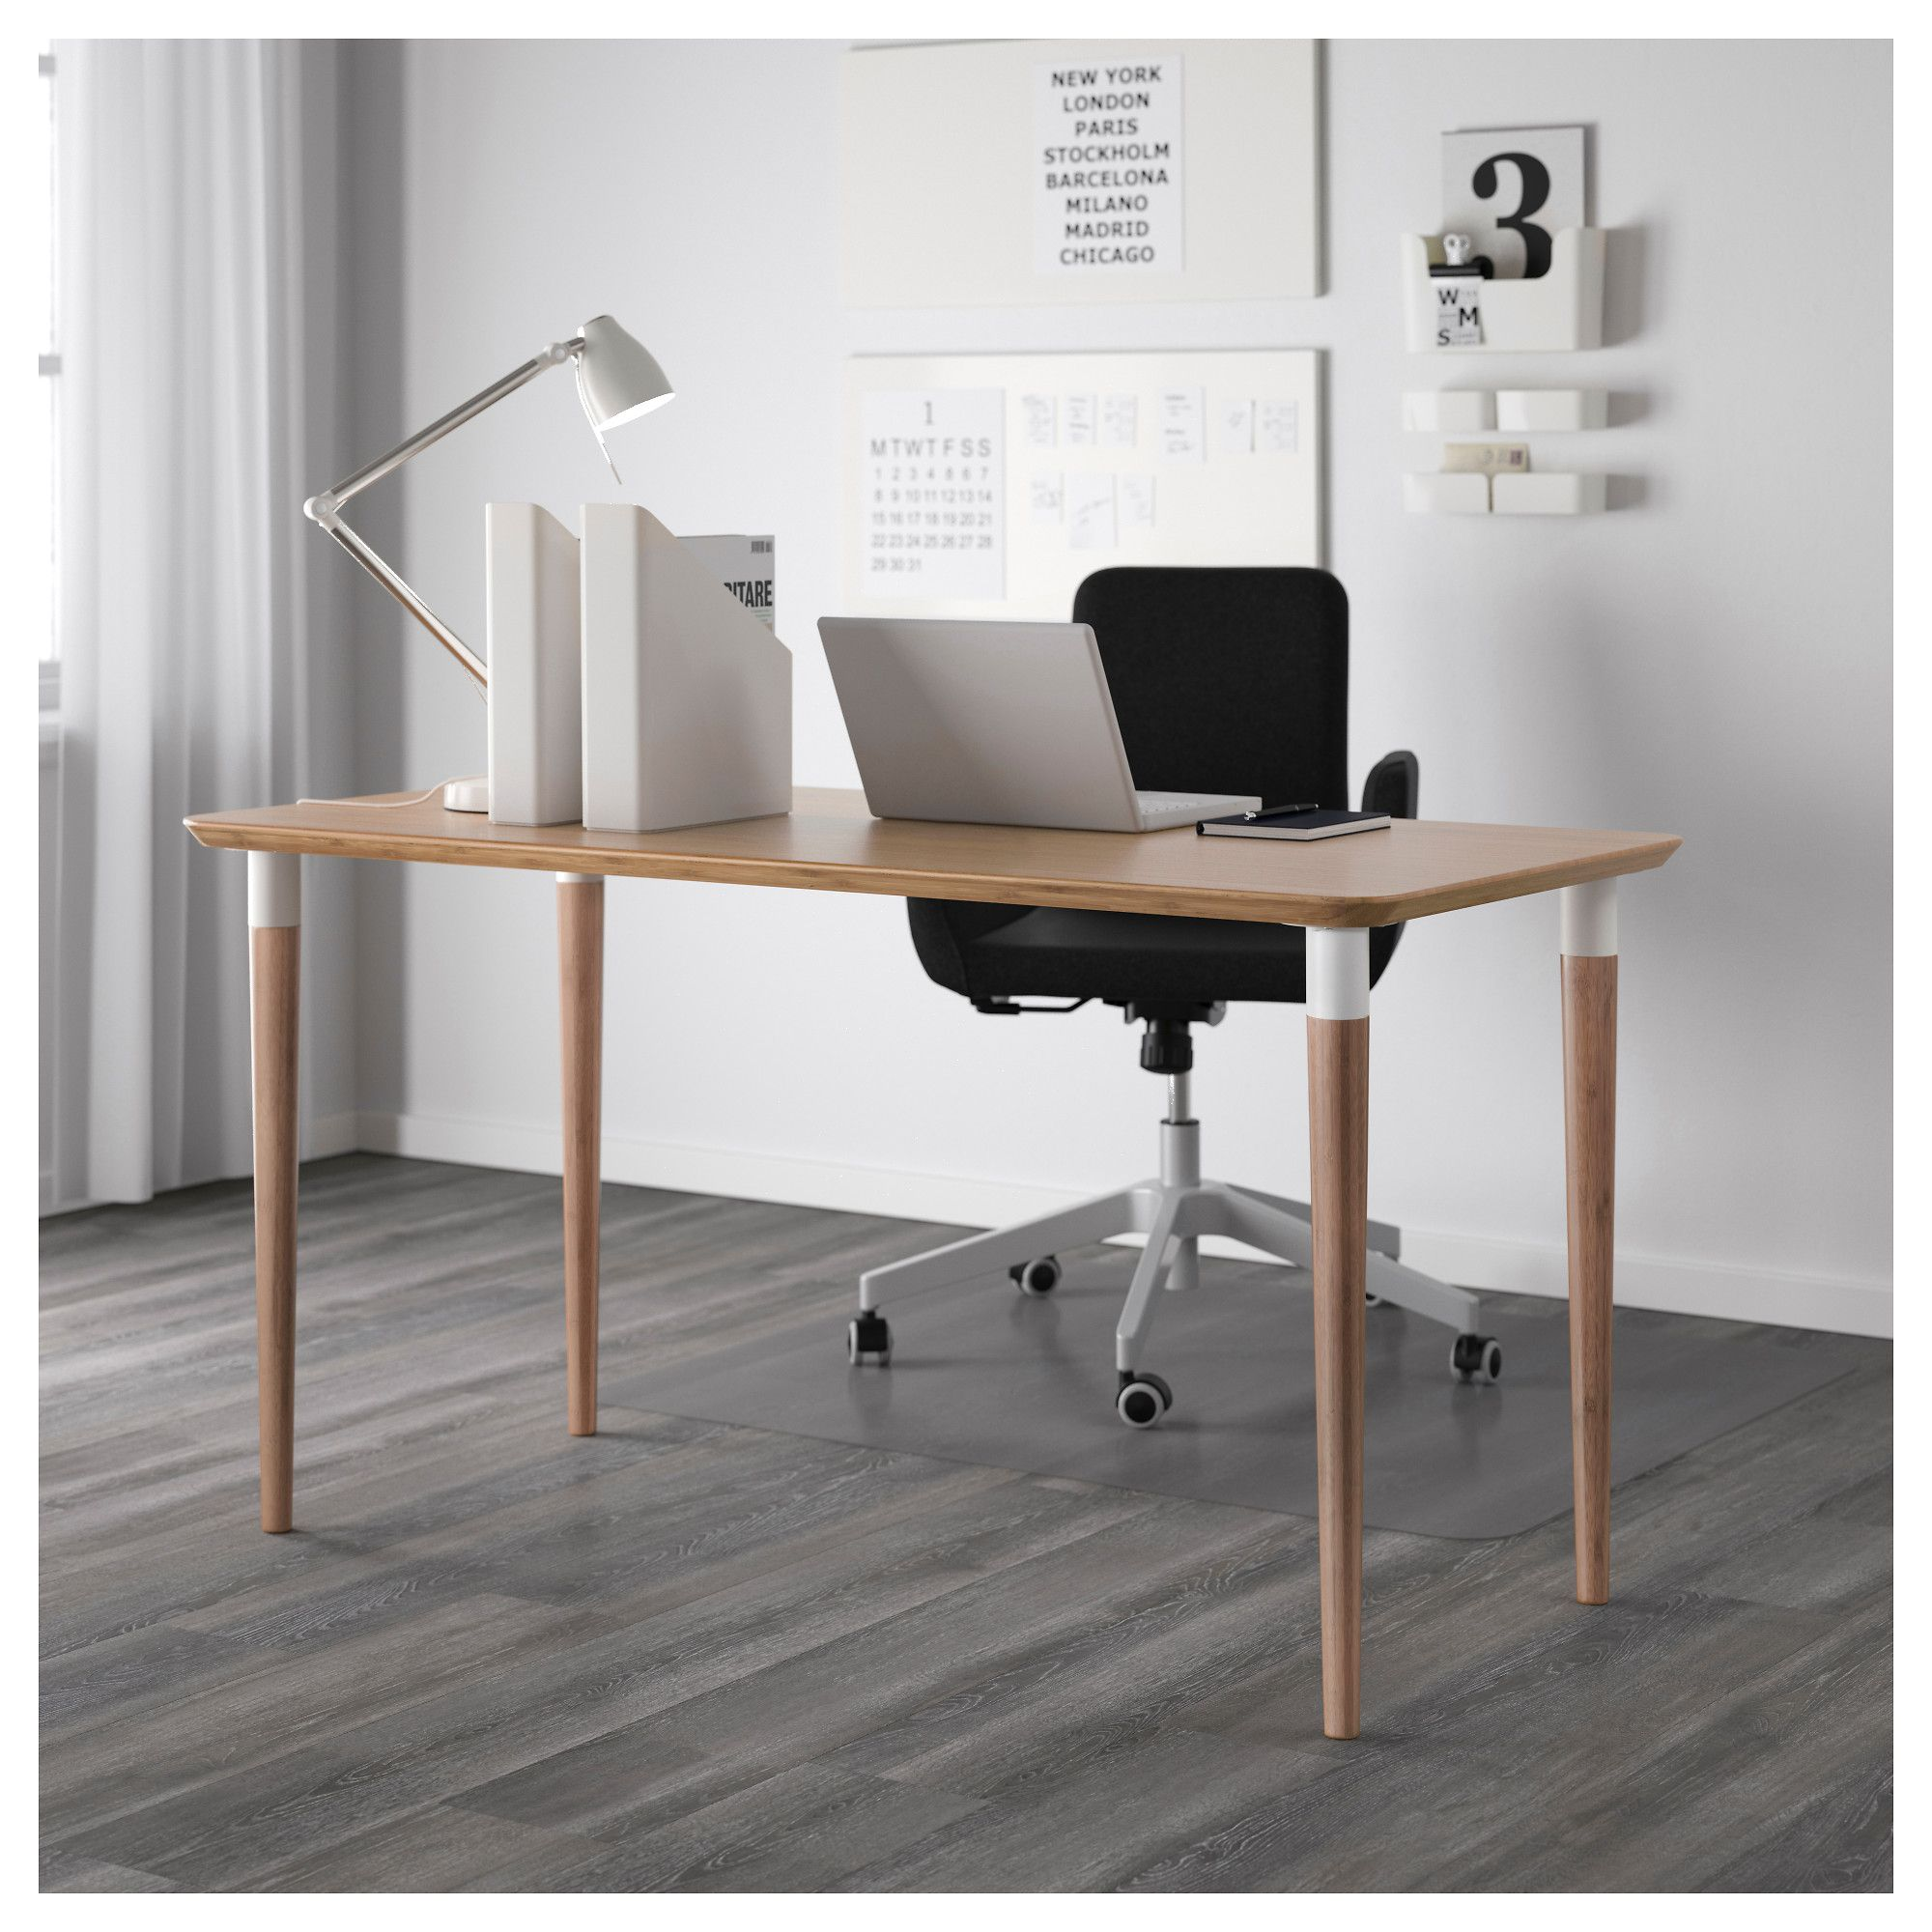 Ikea Hilver Table This Desk Is Made Of Bamboo Which Is A Durable Renewable And Sustainab Home Office Furniture Desk Home Office Furniture Ikea Furniture